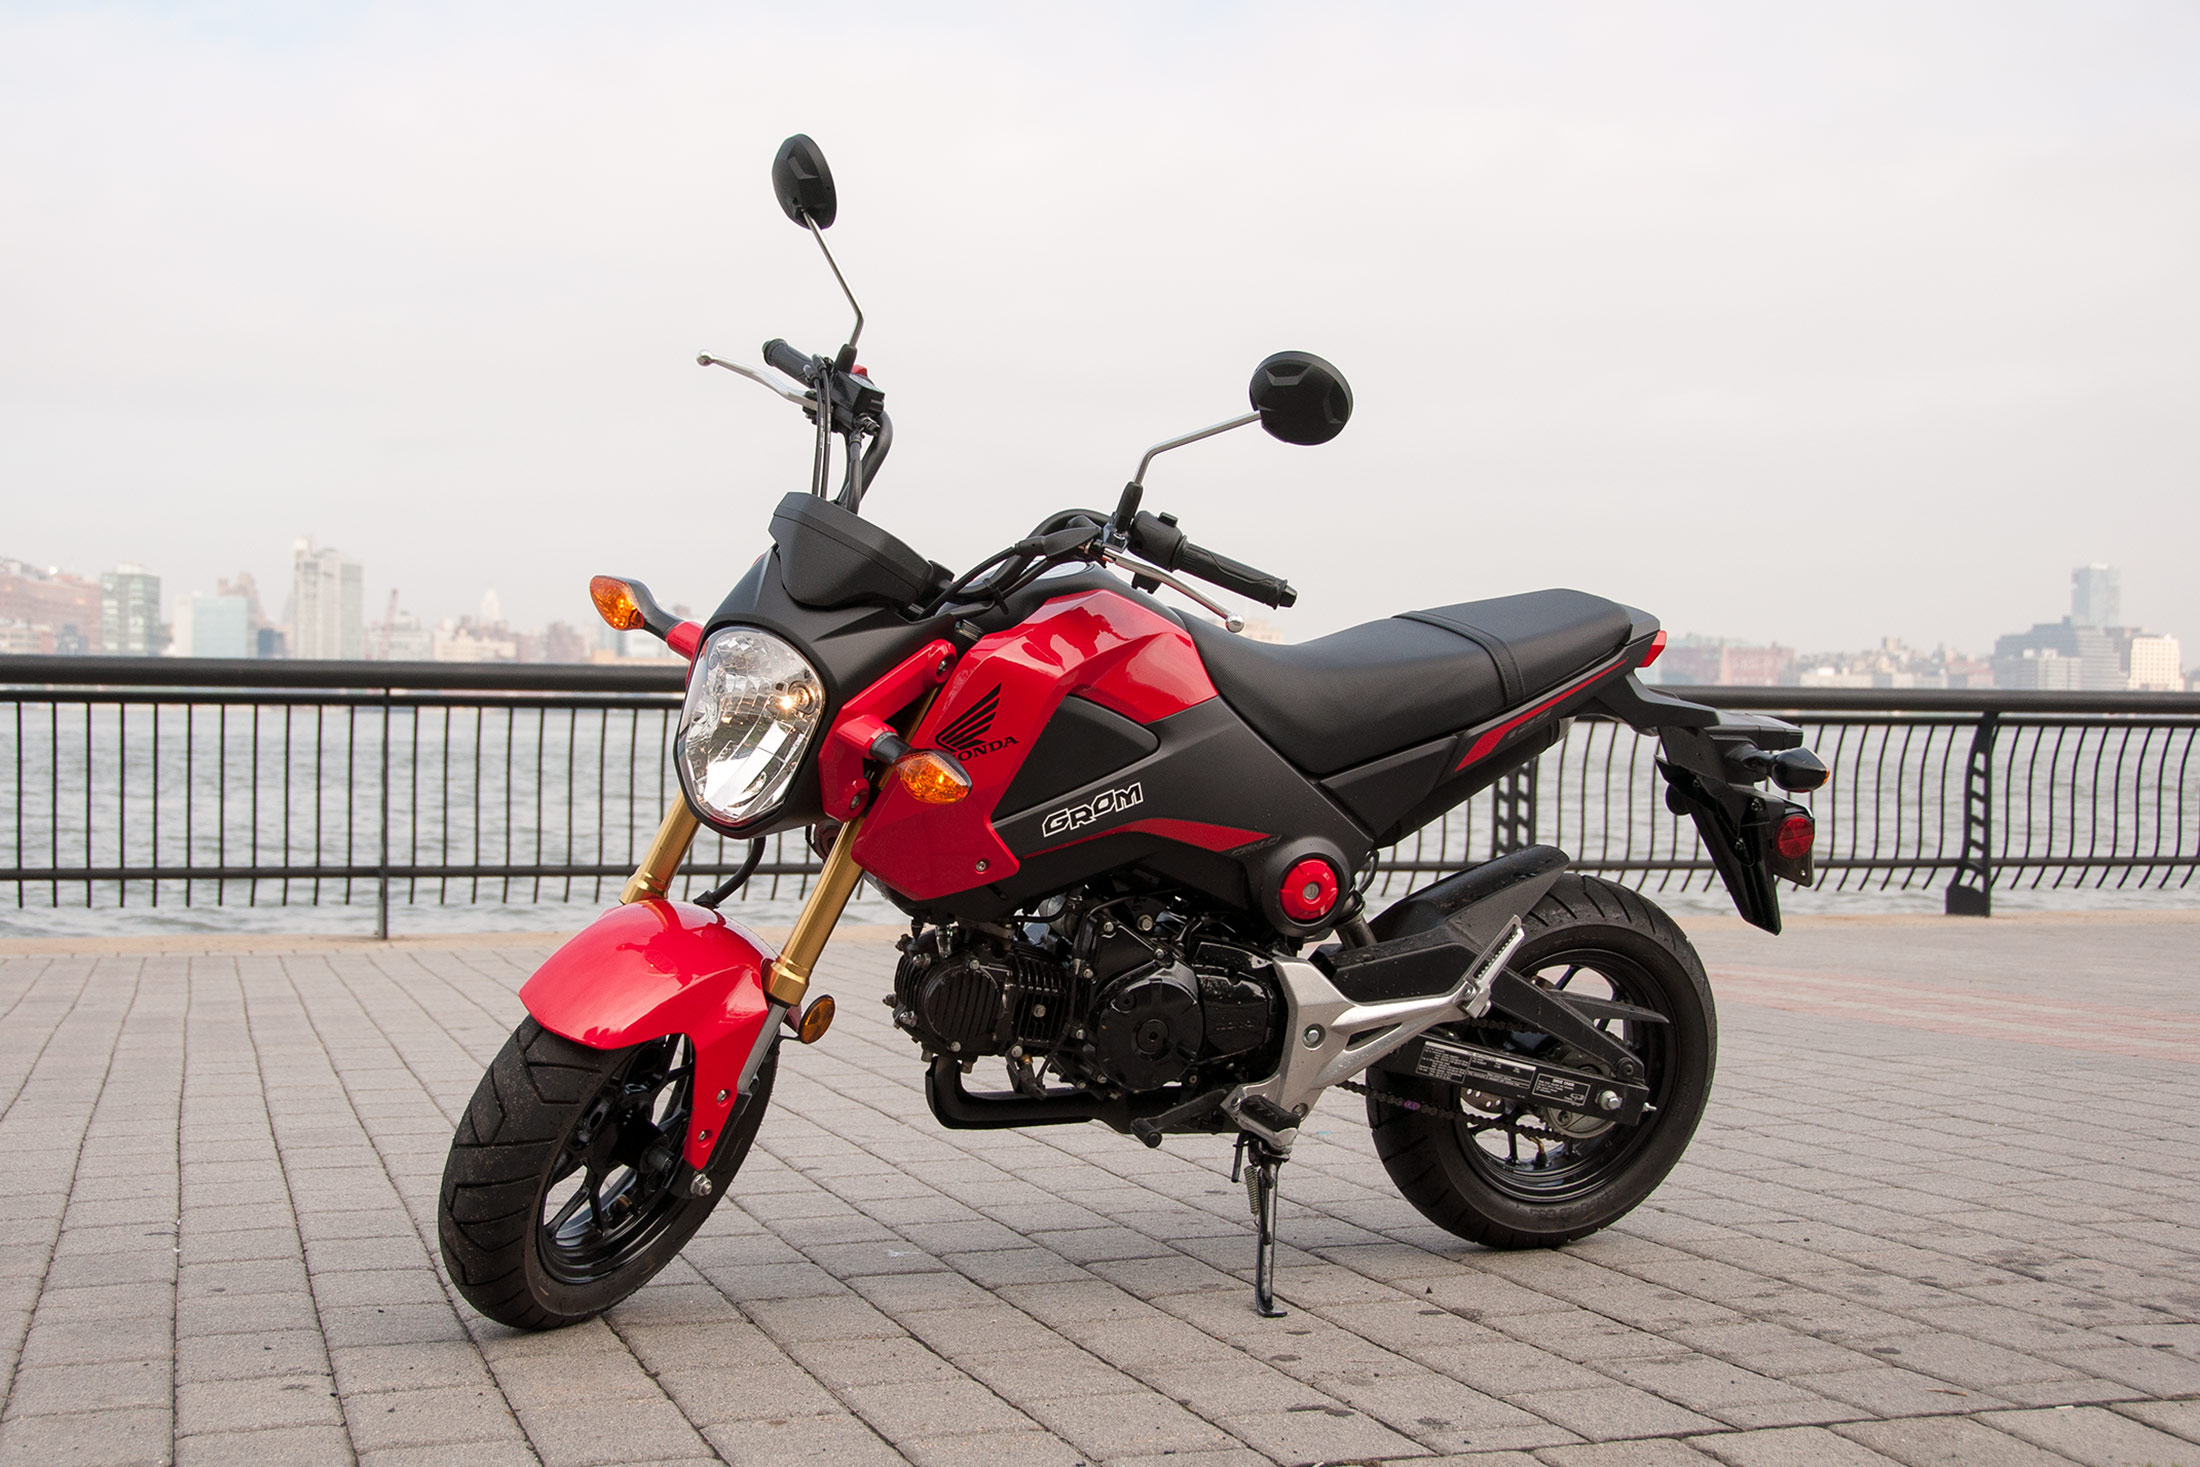 Honda Grom Review >> Honda Grom Review: Big Thrills, Tiny Motorcycle - Bloomberg